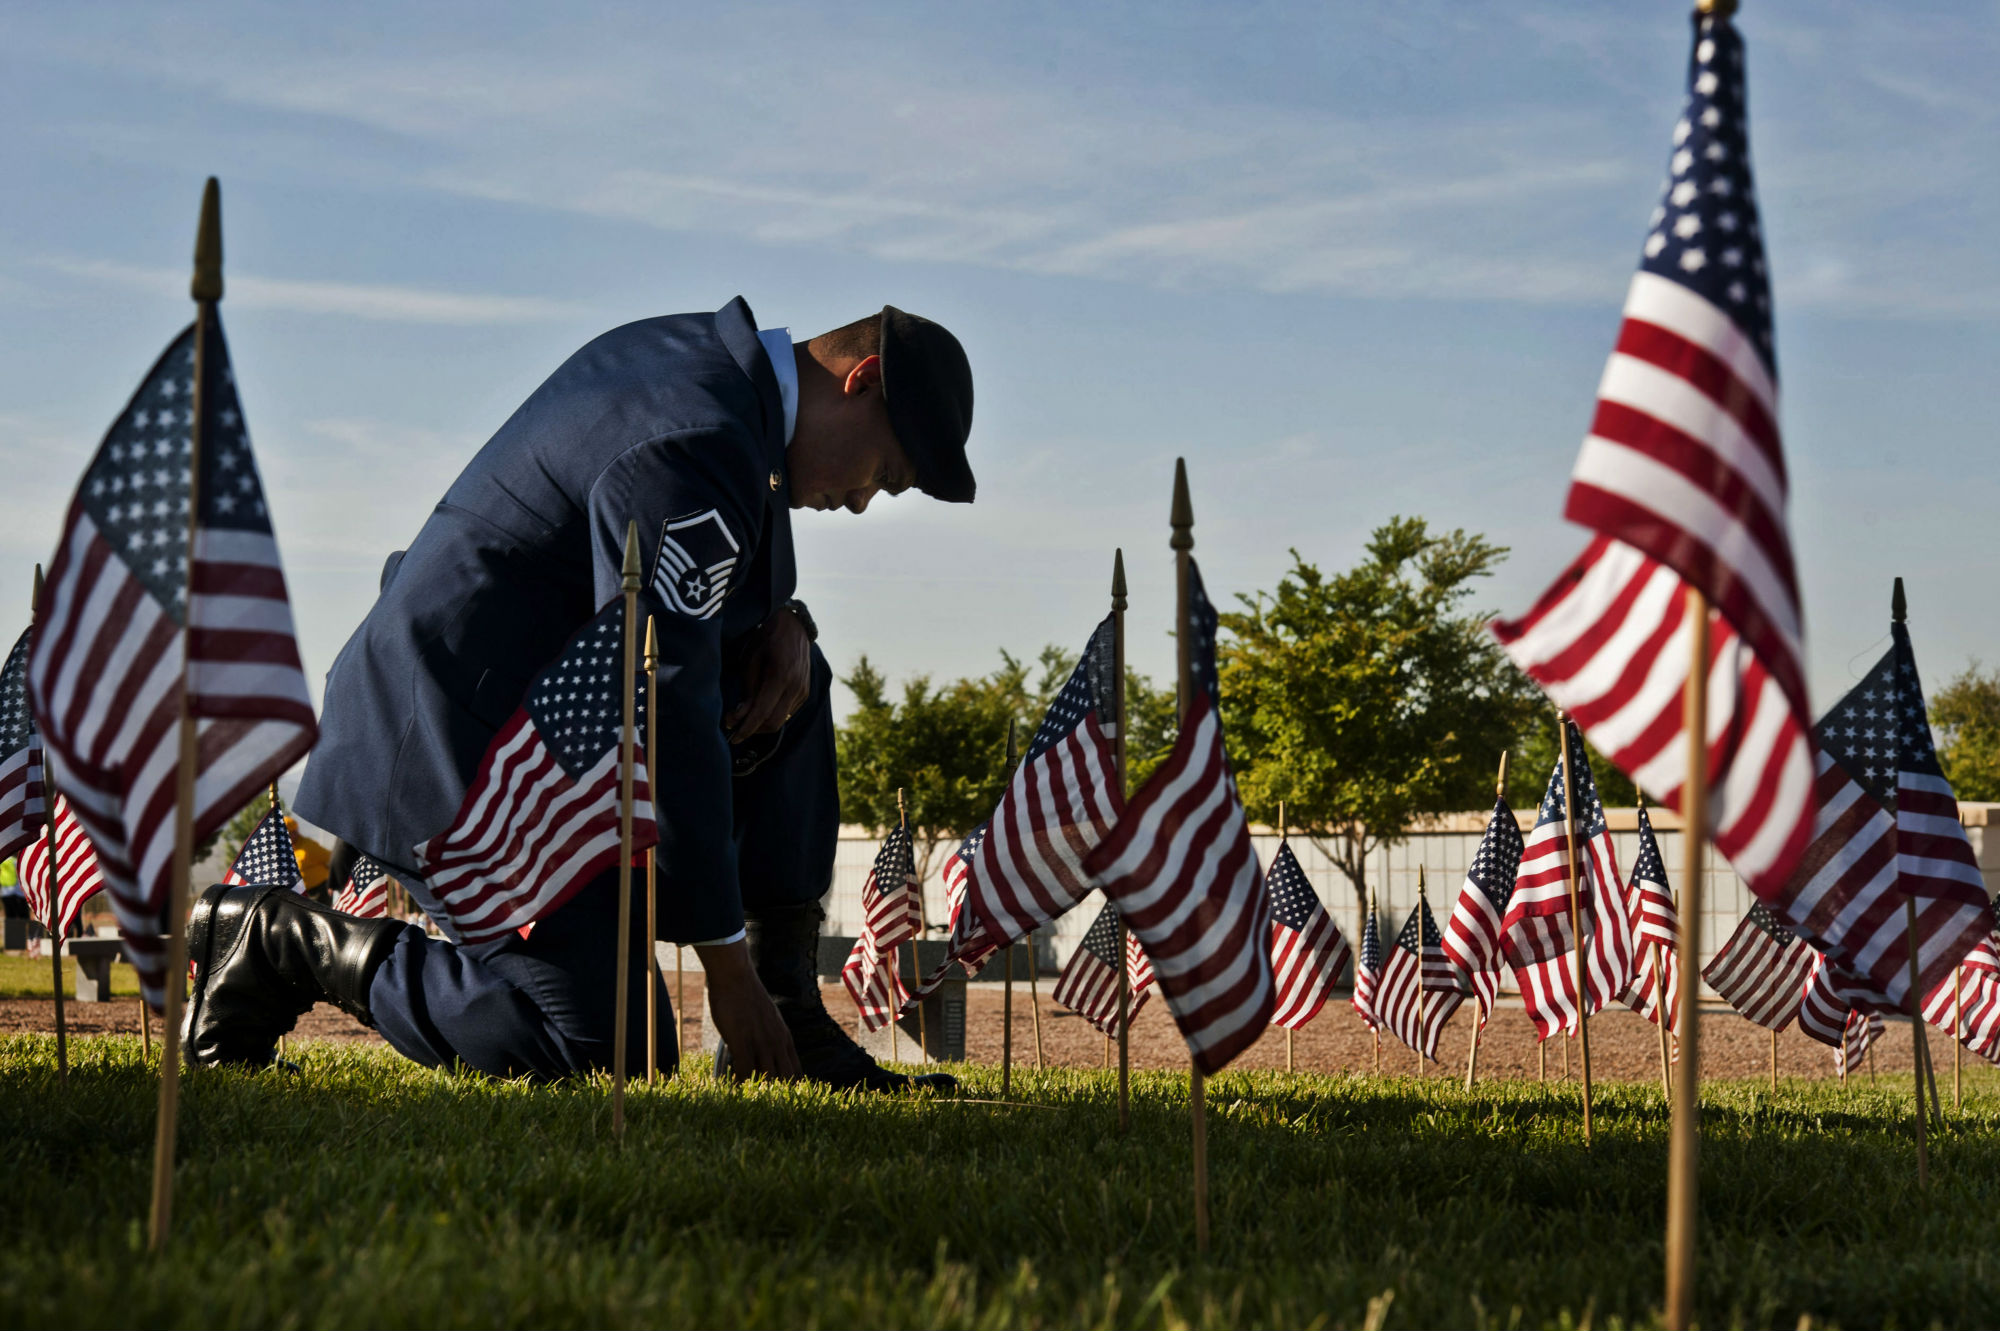 People across the country took this day to honor veterans and active military members.